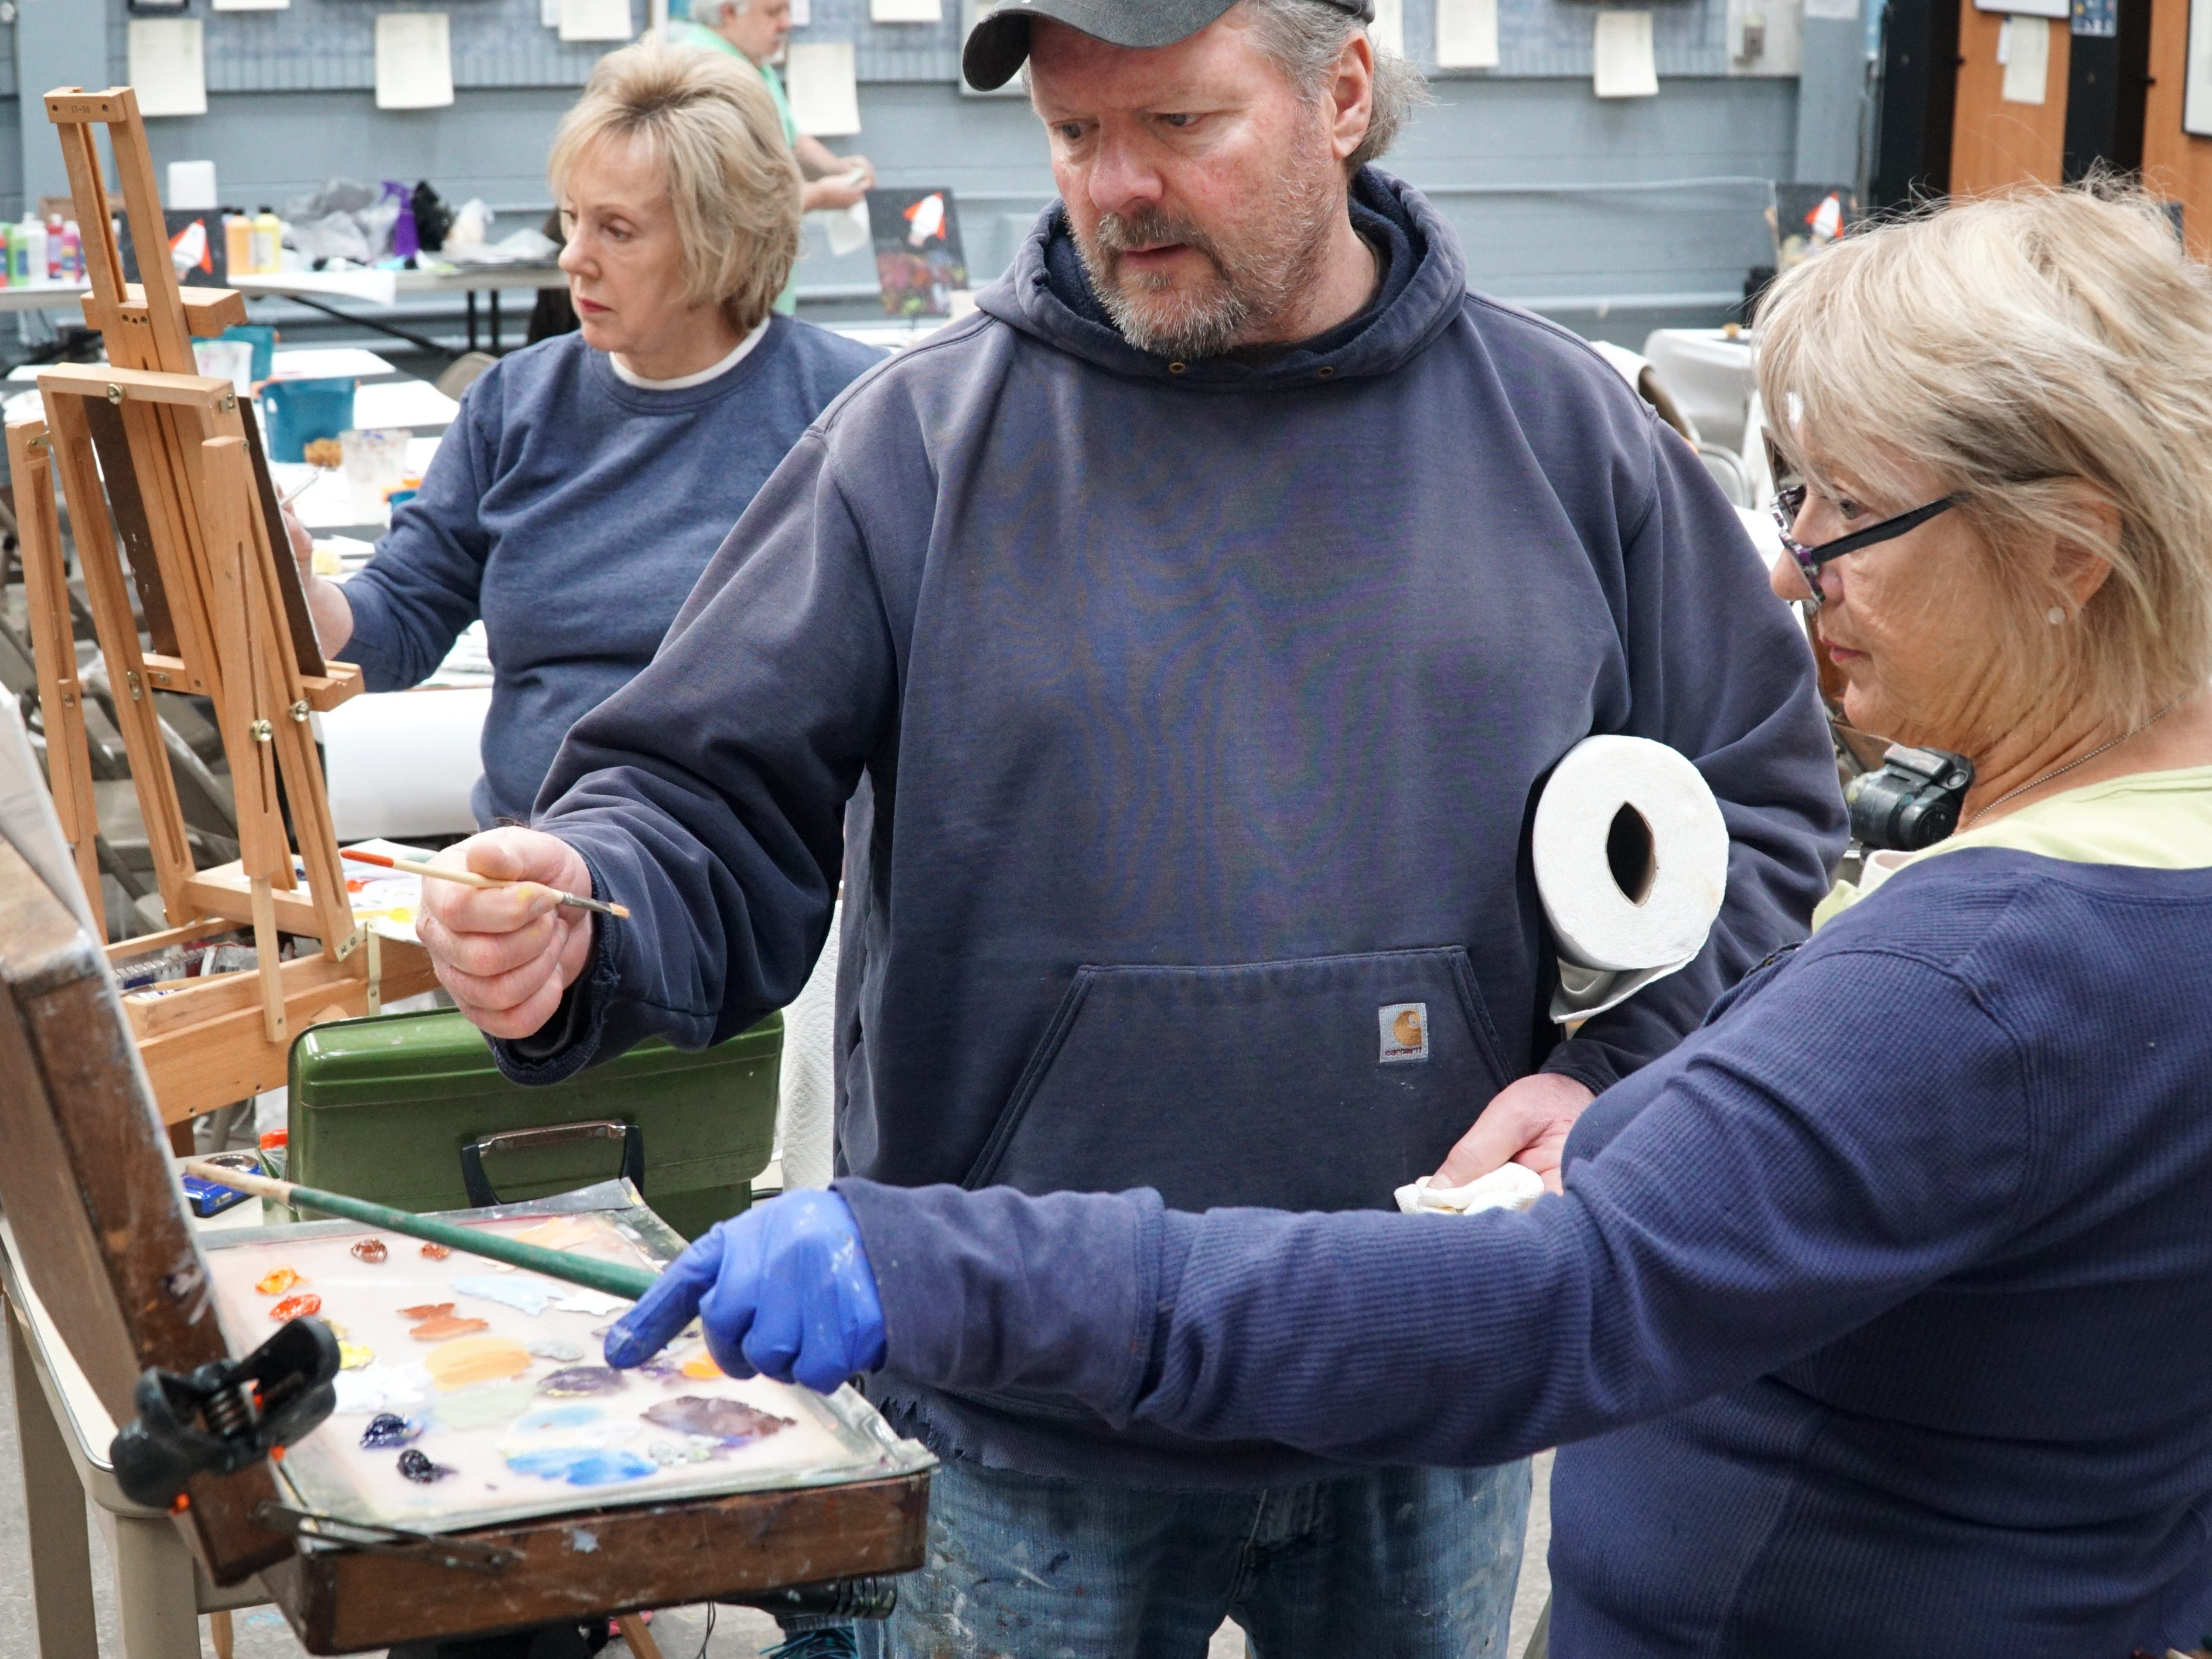 Mike Todoroff, center, talks with student Lyn Banks during his April 1 Oil Paining From Life class at the Suzanne Haskew Arts Center in Milford. The class met from 10a.m. to noon that day and had four students that were painting a still life of a pineapple. The SHAC has lots of classes for people of all ages and abilities. For more inforamaiton contact them at (248) 797-3060 or visit the location at 125 S Main St #700, in Milford. Online at milfordshac.org.